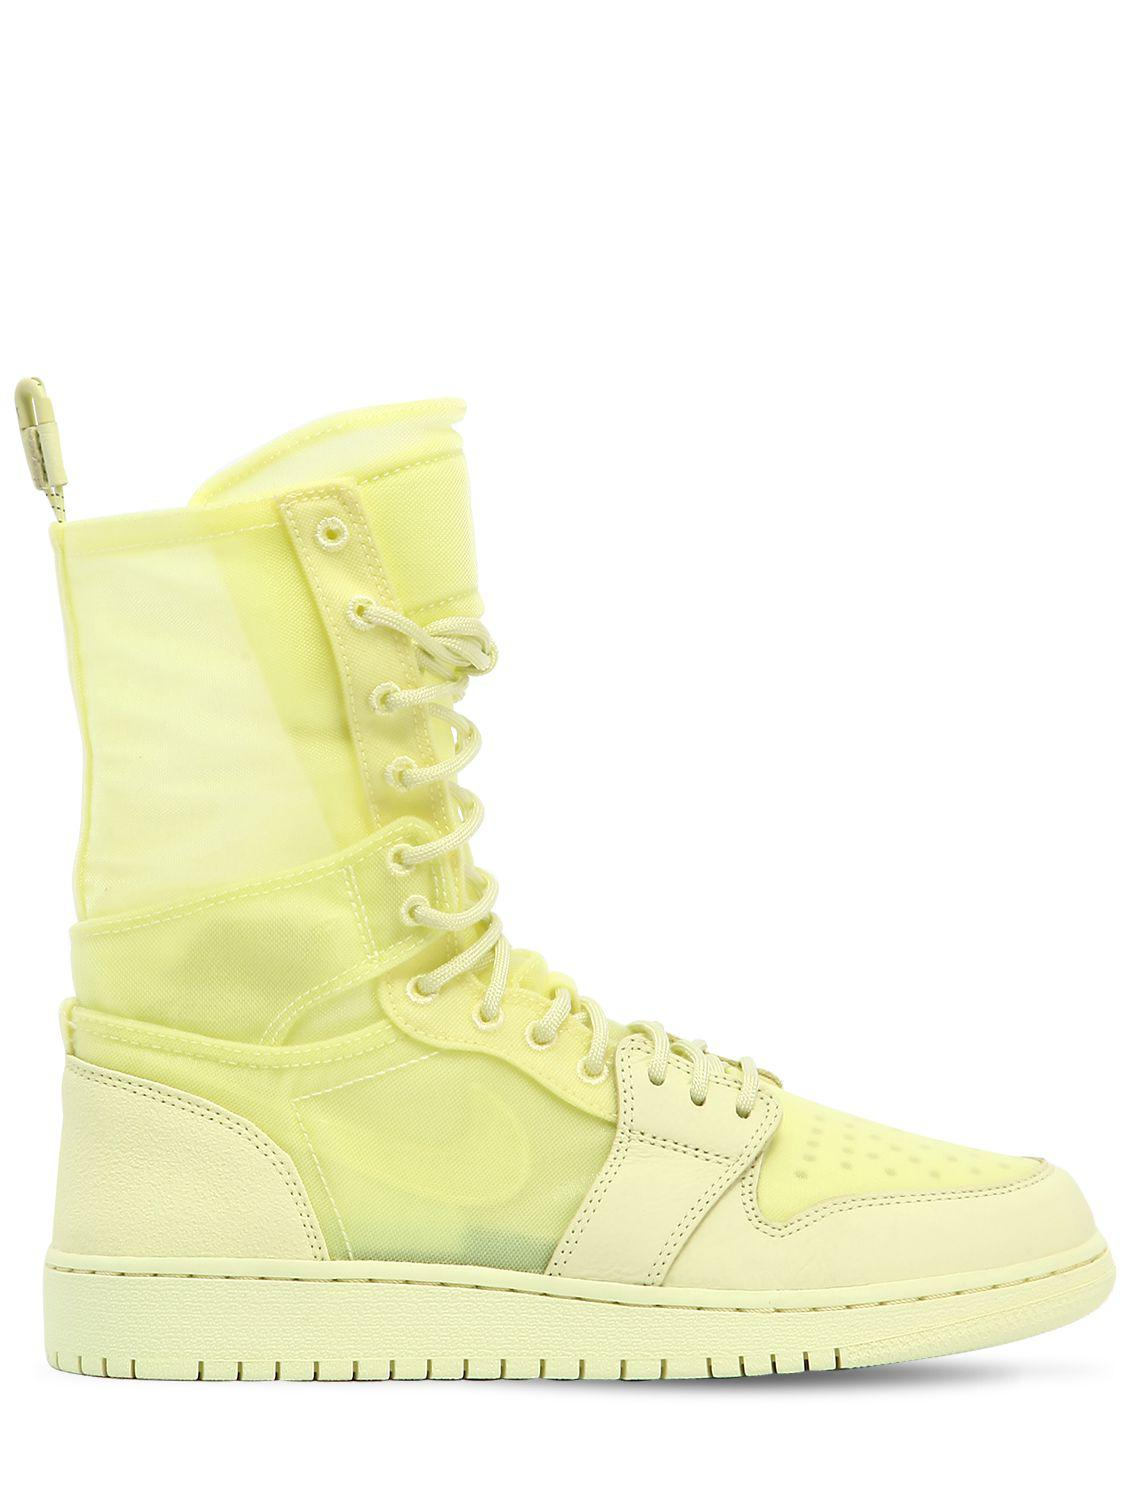 in stock 59a6c 409c8 Nike Air Jordan 1 Explorer Xx Sneaker Boots in Yellow - Lyst